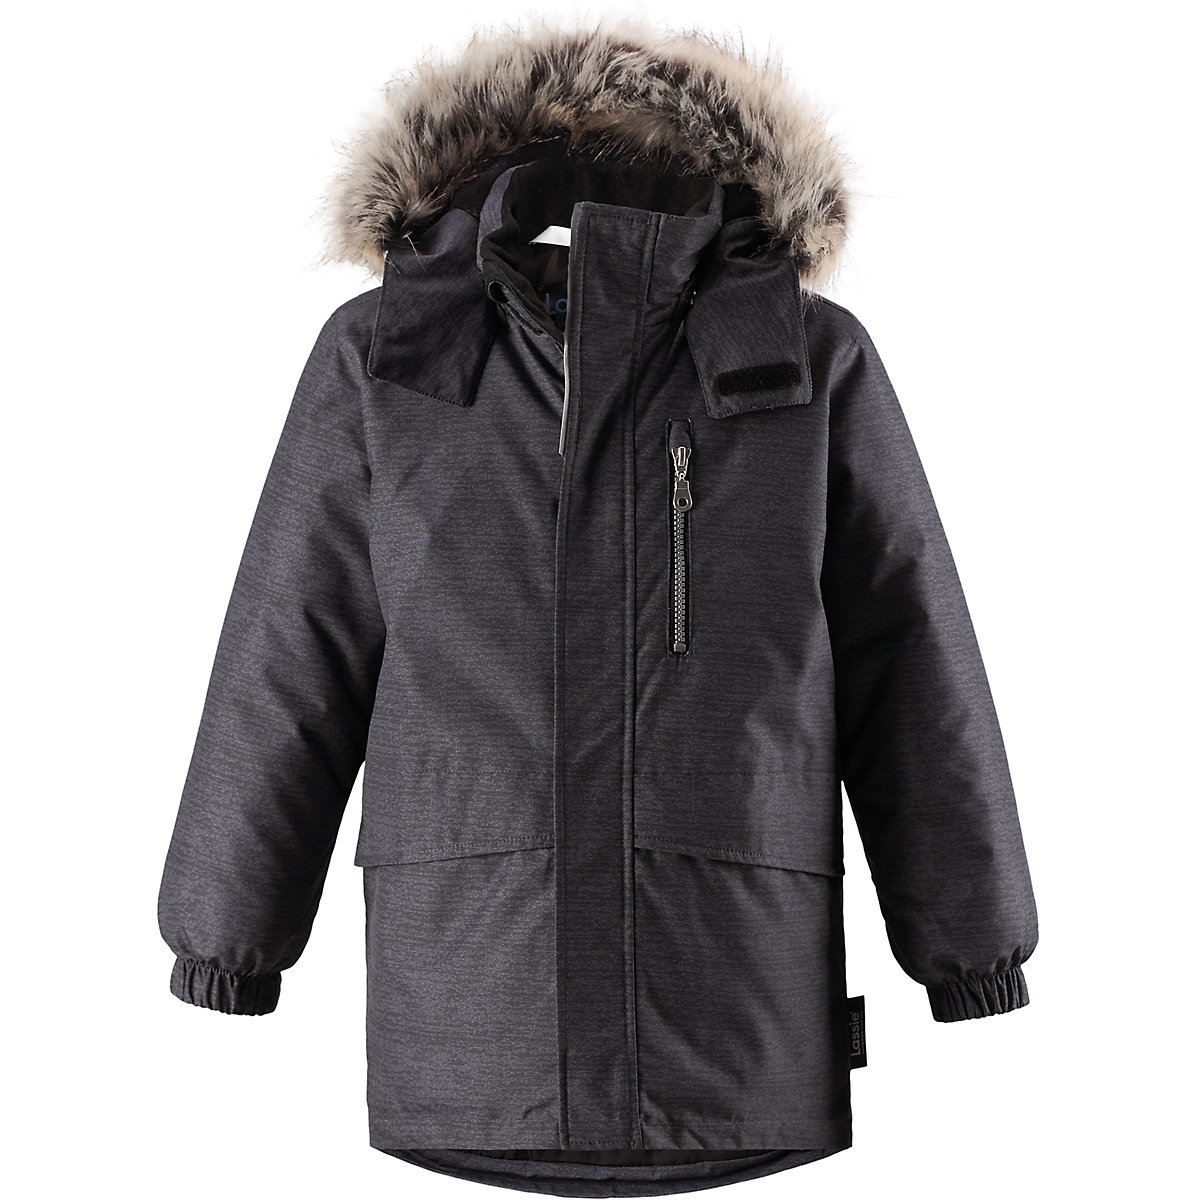 Jackets & Coats LASSIE for boys 8625786 Jacket Coat Denim Cardigan Warm Children clothes Kids biboymall winter coat 2017 military coats women cotton wadded hooded jacket casual parkas thickness plus size snow outwear